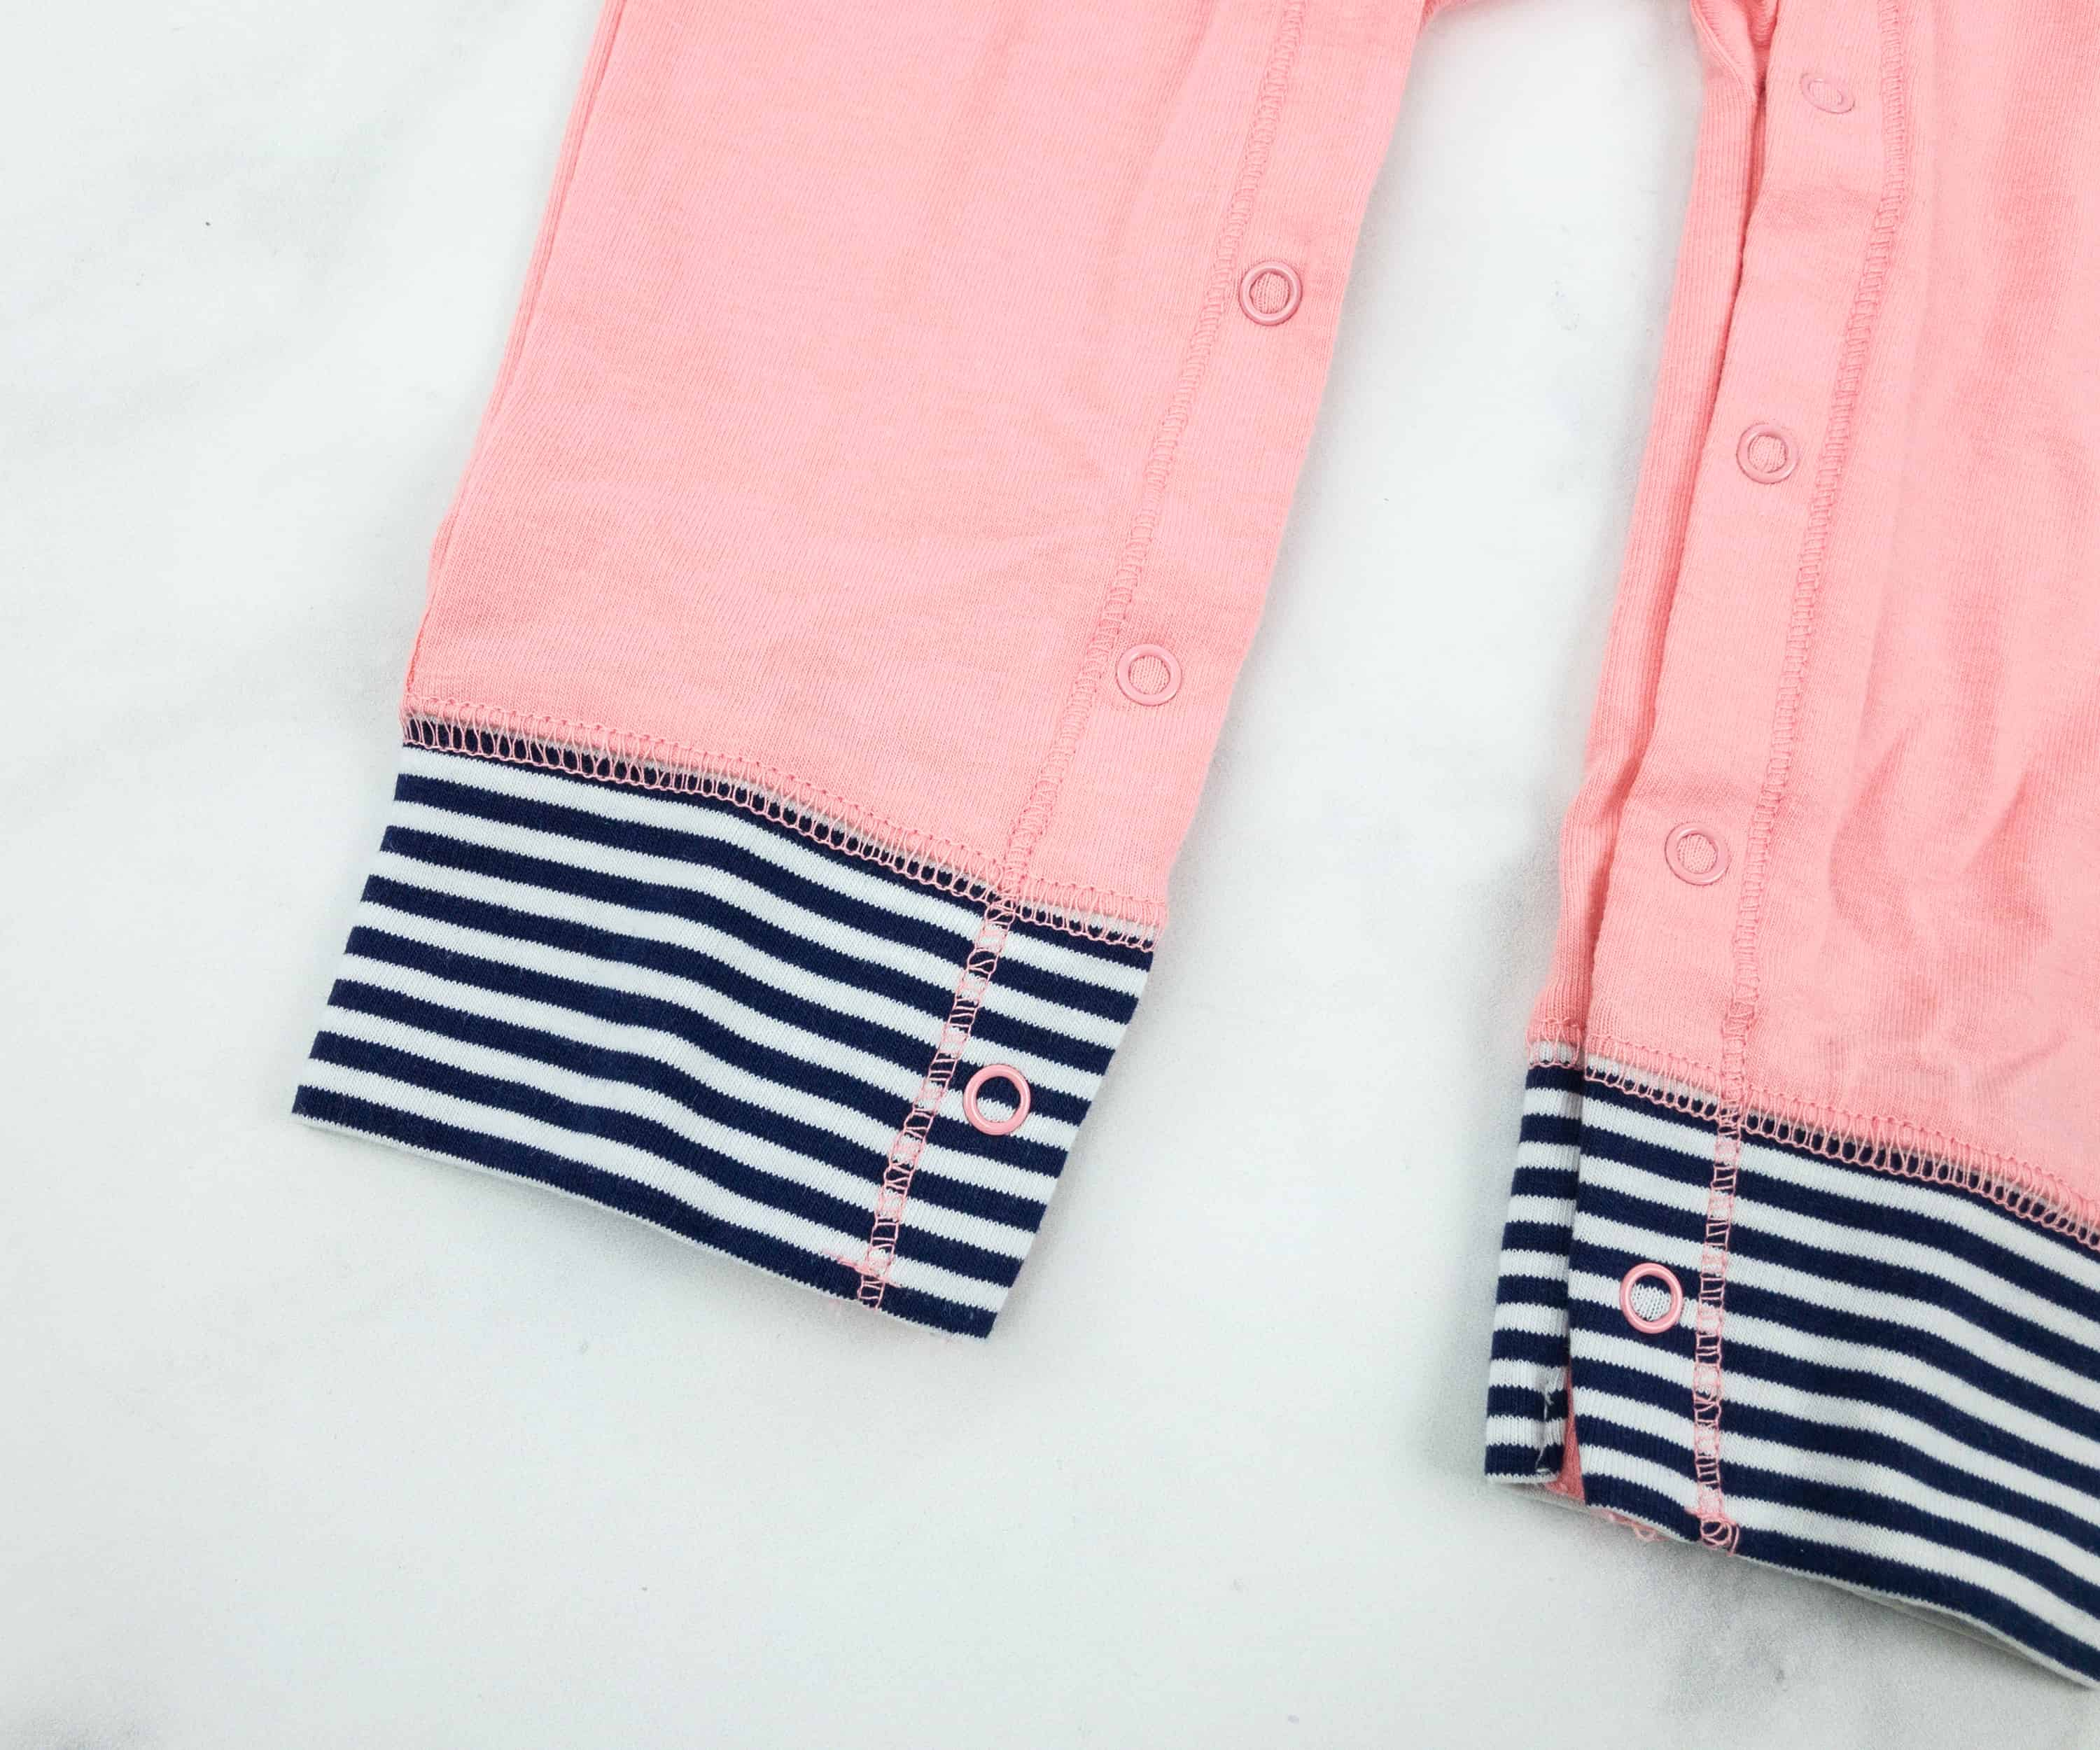 9ac098ca72cf4 If you are worried about diaper changes, the leggings have buttons on them  which you can unbutton when you need to replace diapers.